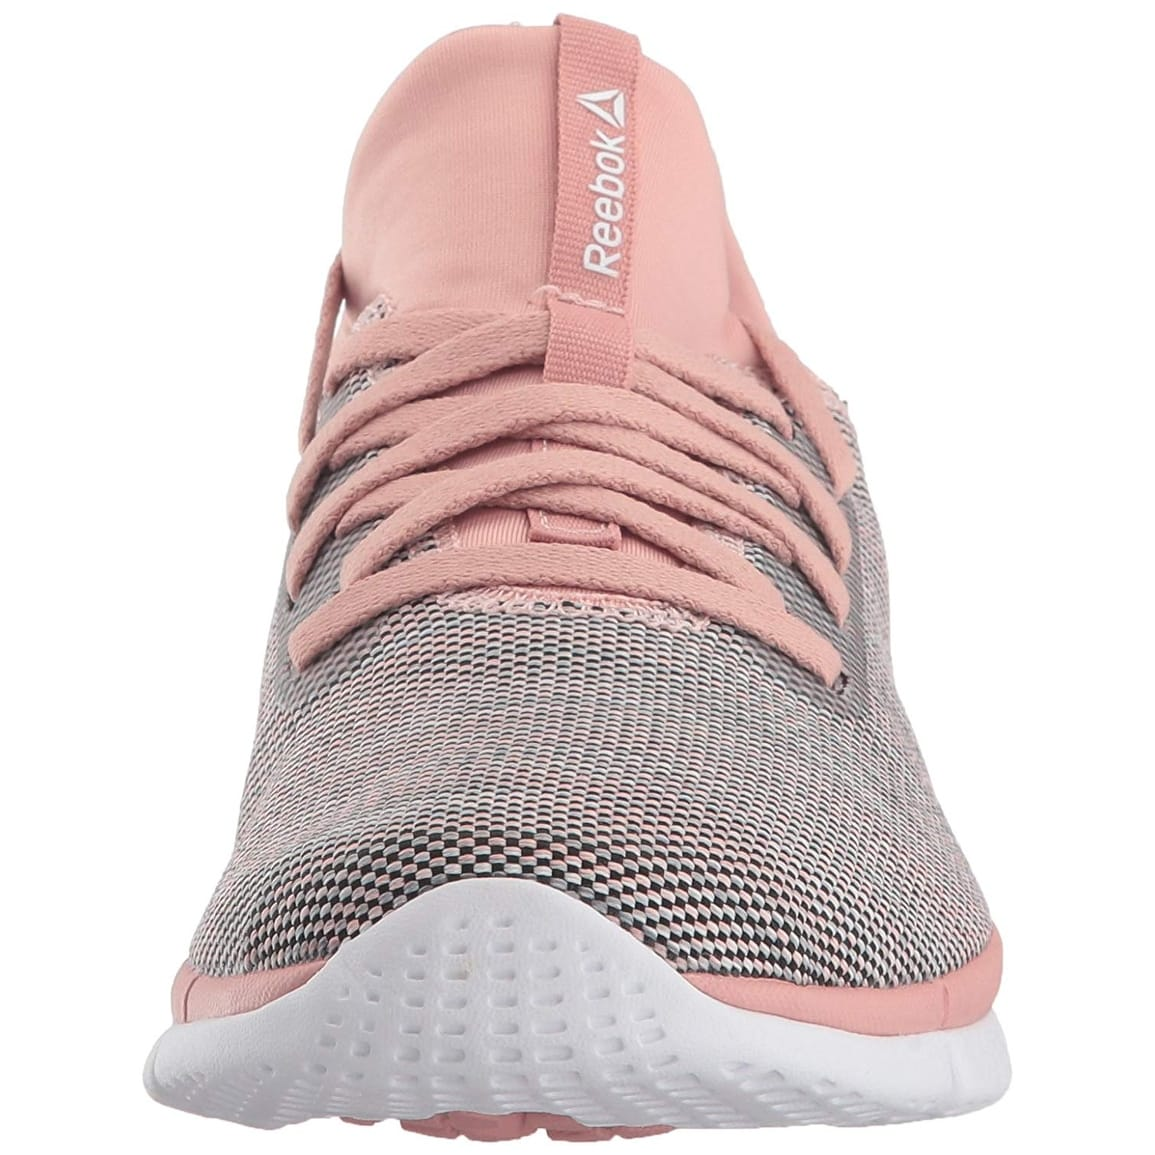 1fcf9fb57c77 Shop Reebok Women s Print Her 2.0 BLND Sneaker - Free Shipping Today -  Overstock.com - 25573143